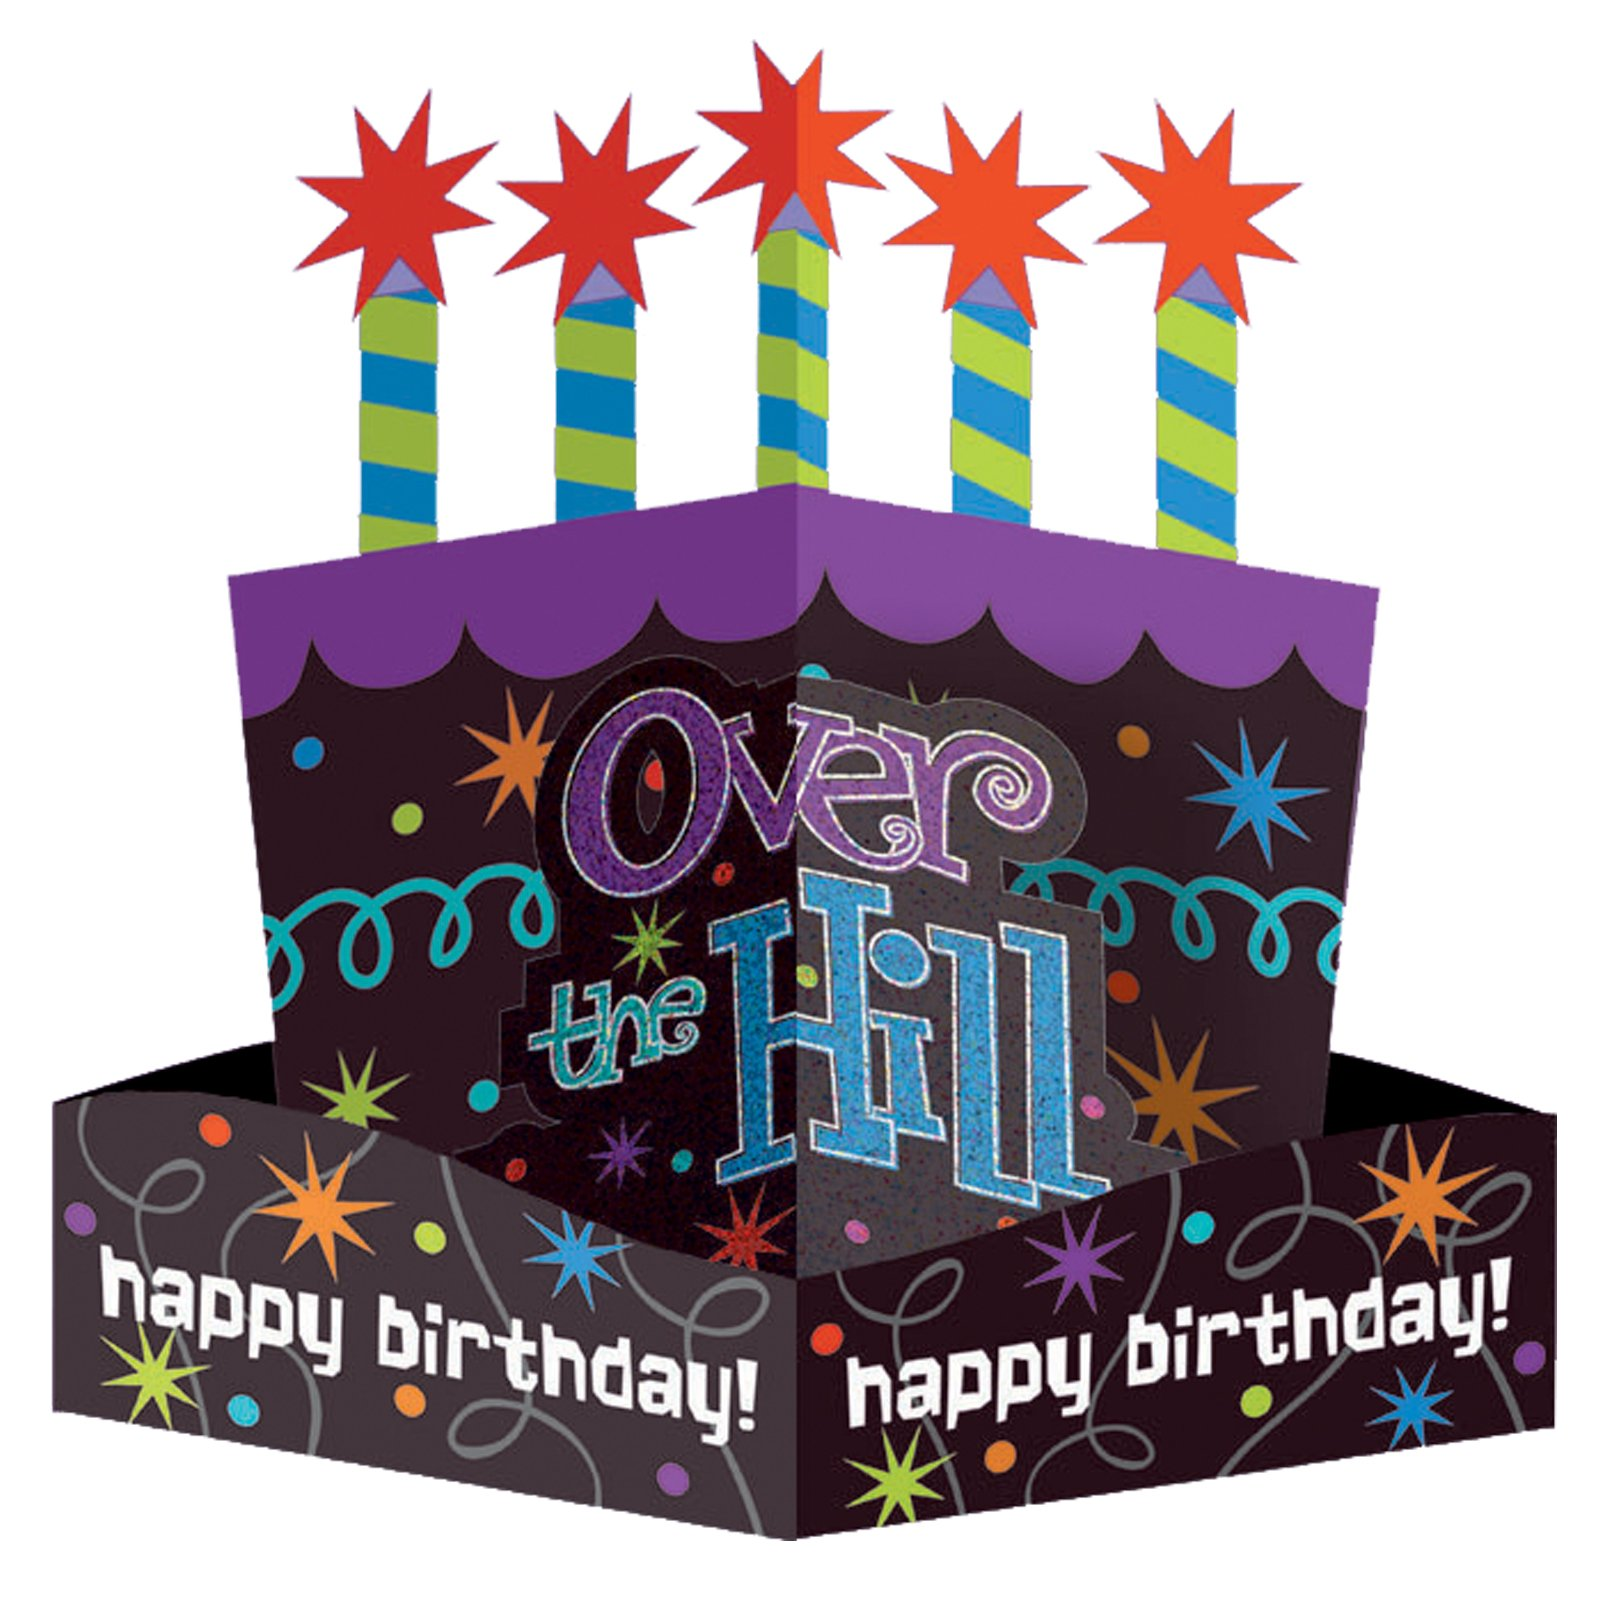 happy birthday free clipart images ; free-happy-birthday-clipart-funny-17